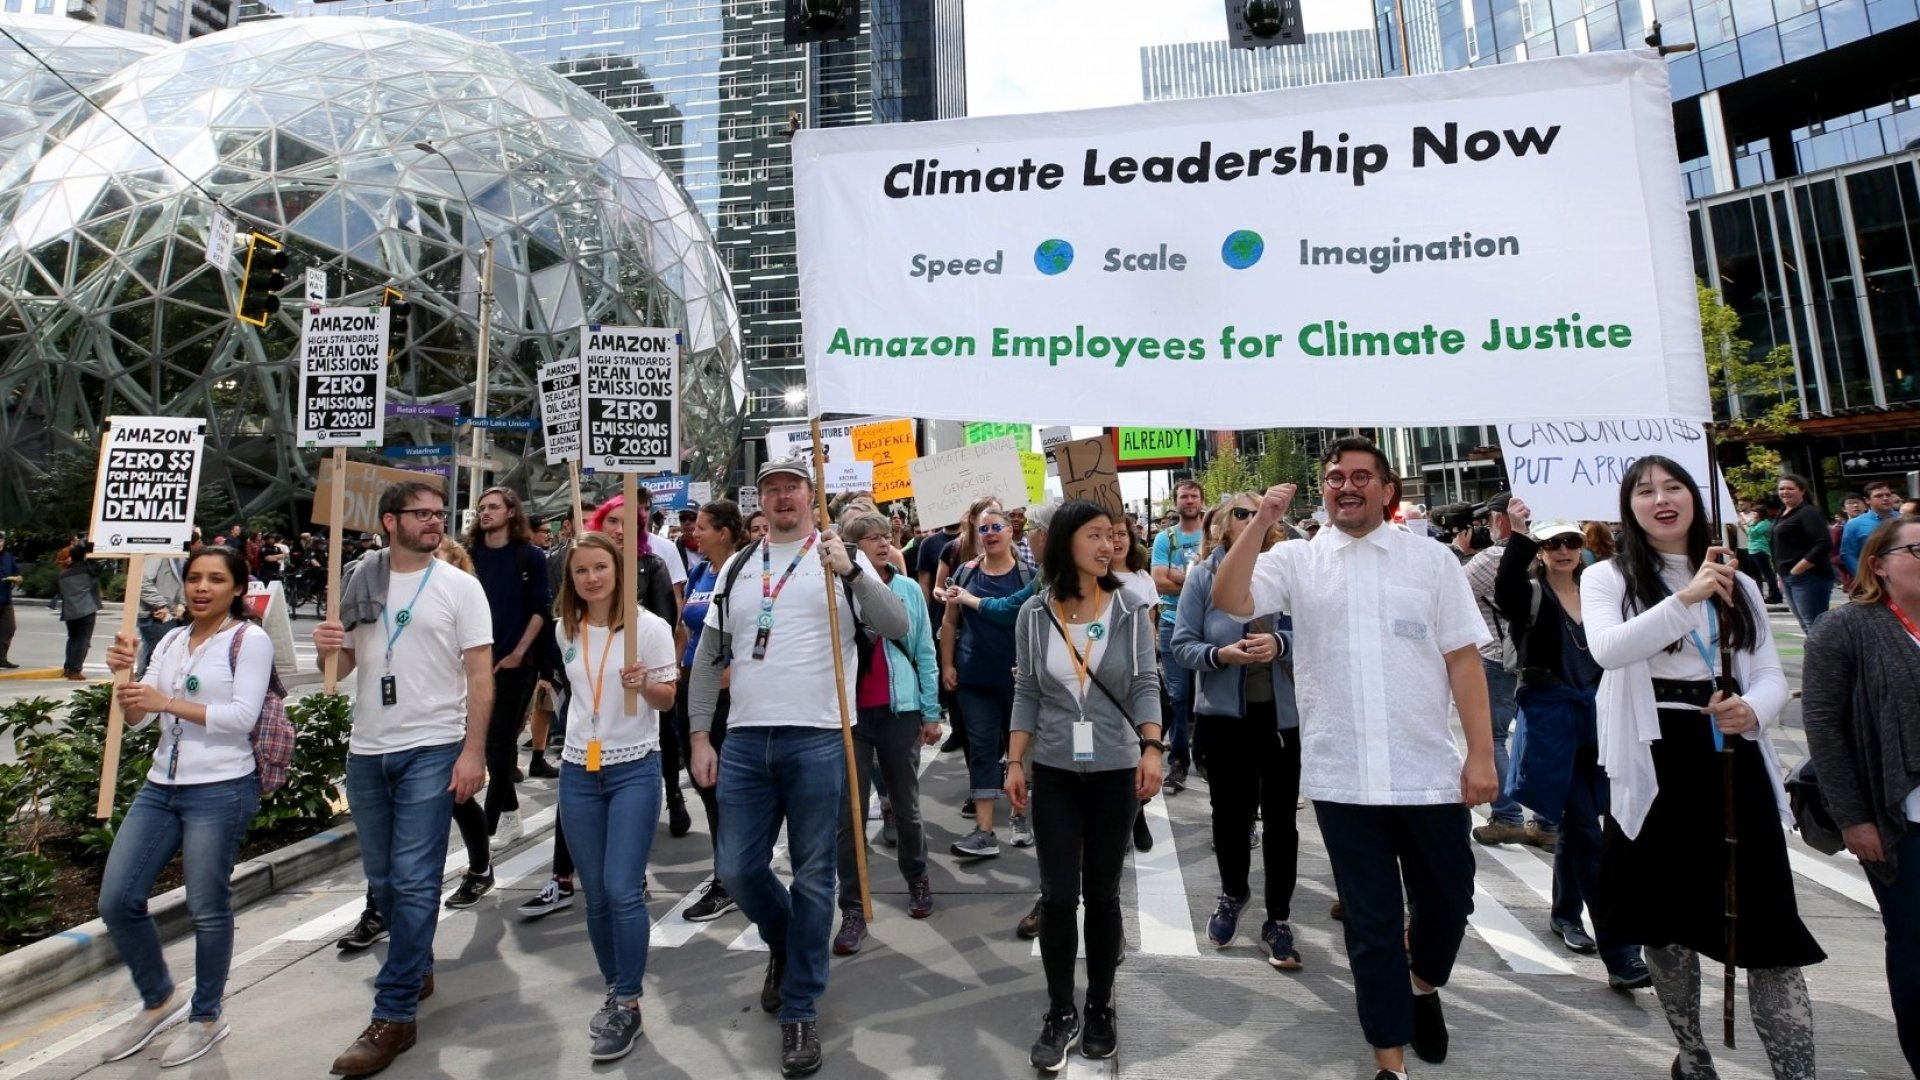 Amazon Employees Make Public Statements, Intentionally Violating Company Policy